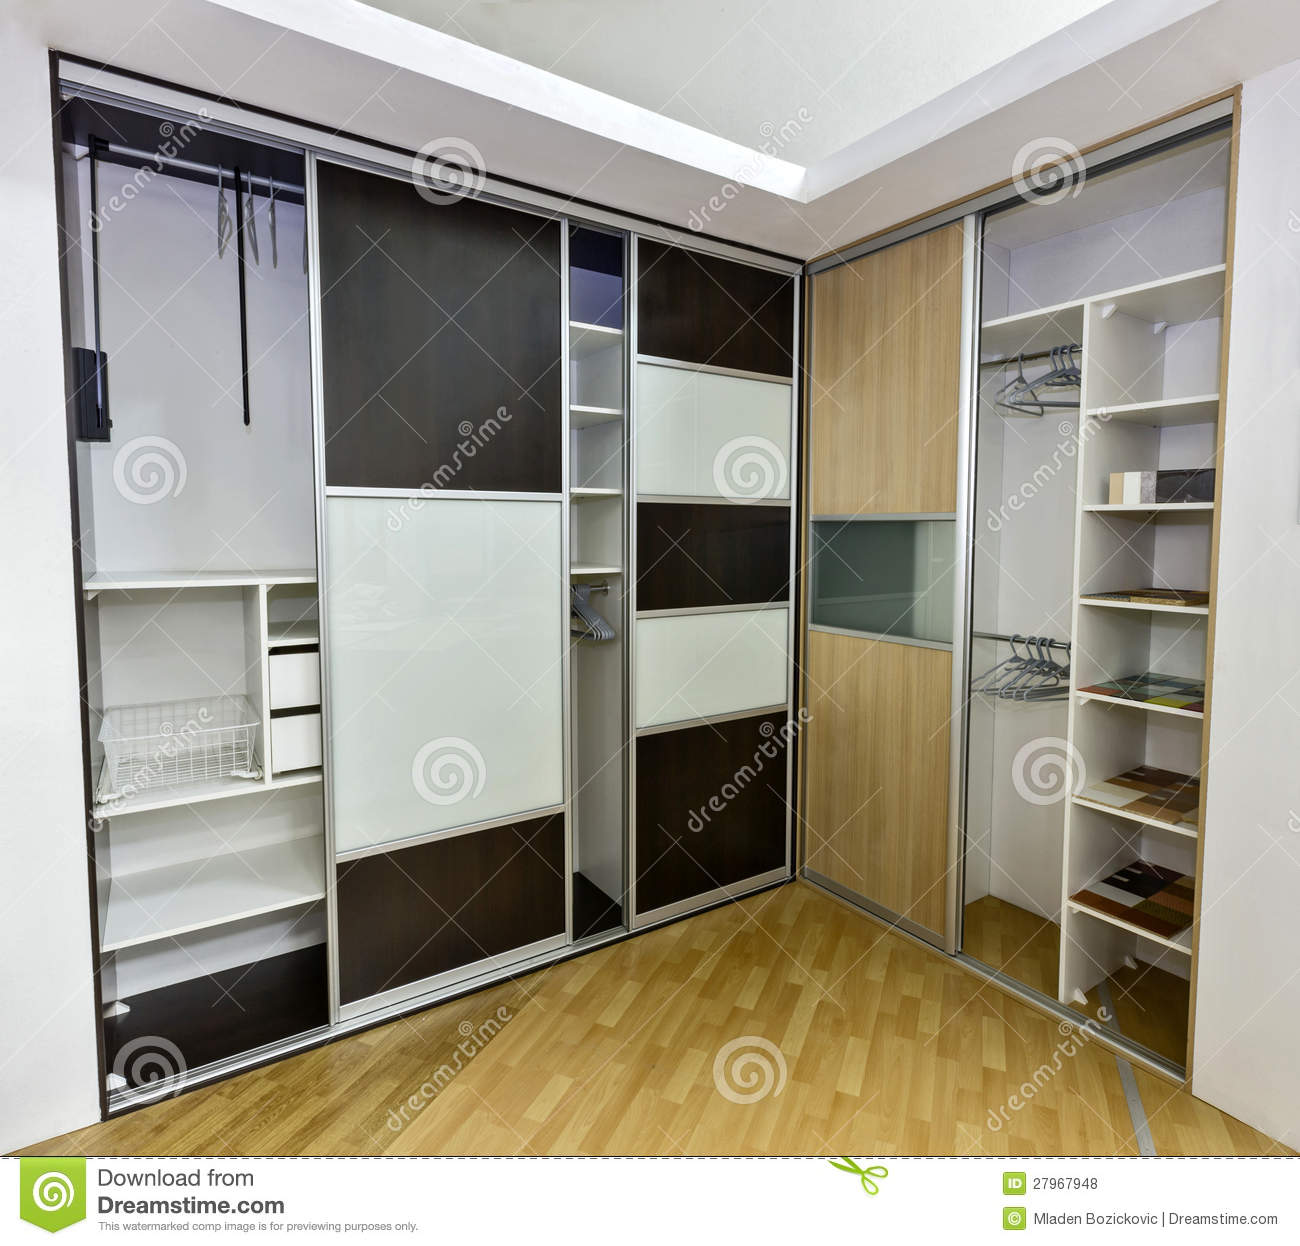 Image Result For Wardrobe Closet With Sliding Doors